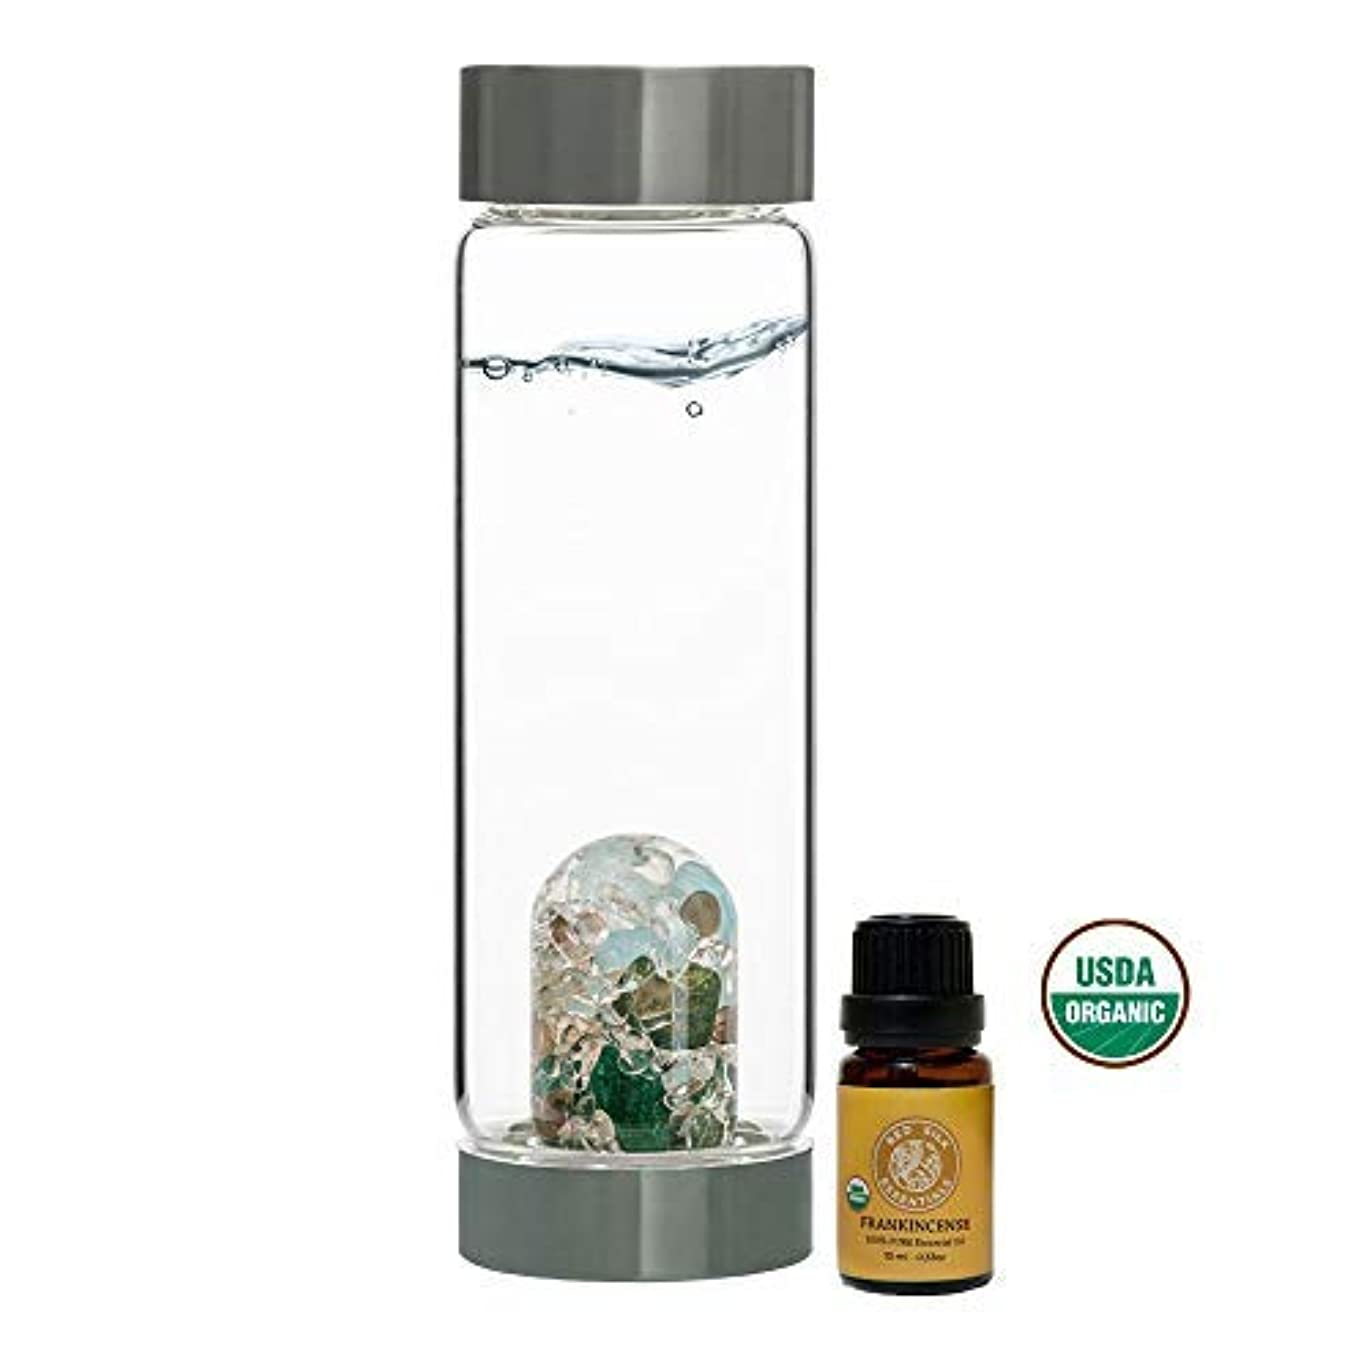 長さ脅かすアラビア語VitaJuwel Gem Water Bottle ViA - Forever Young w/Free Organic Frankincense Essential Oil [並行輸入品]